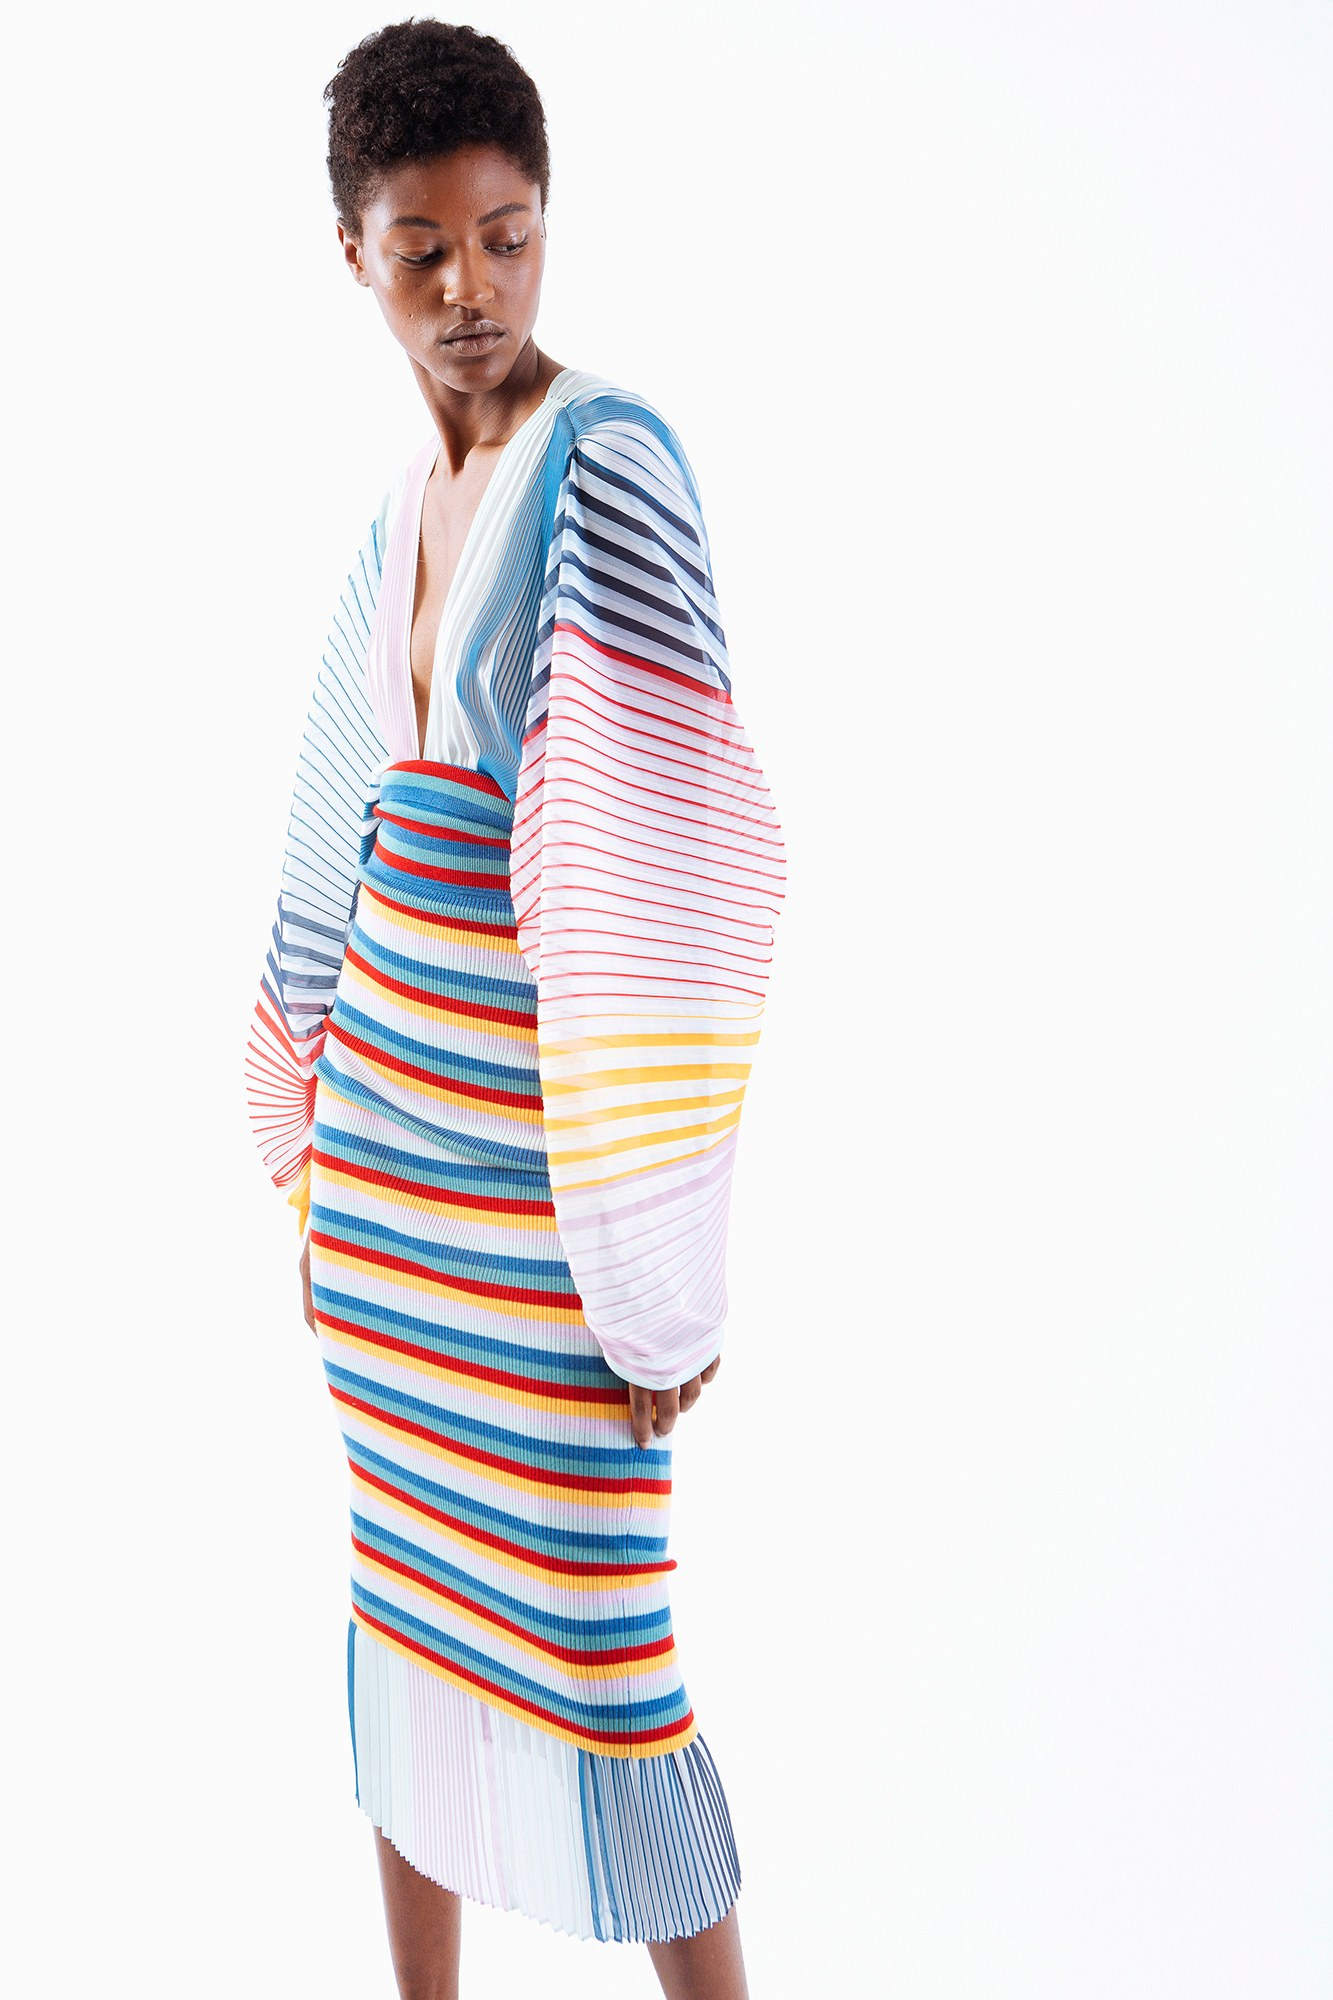 15-tome-spring-2018-ready-to-wear.jpg